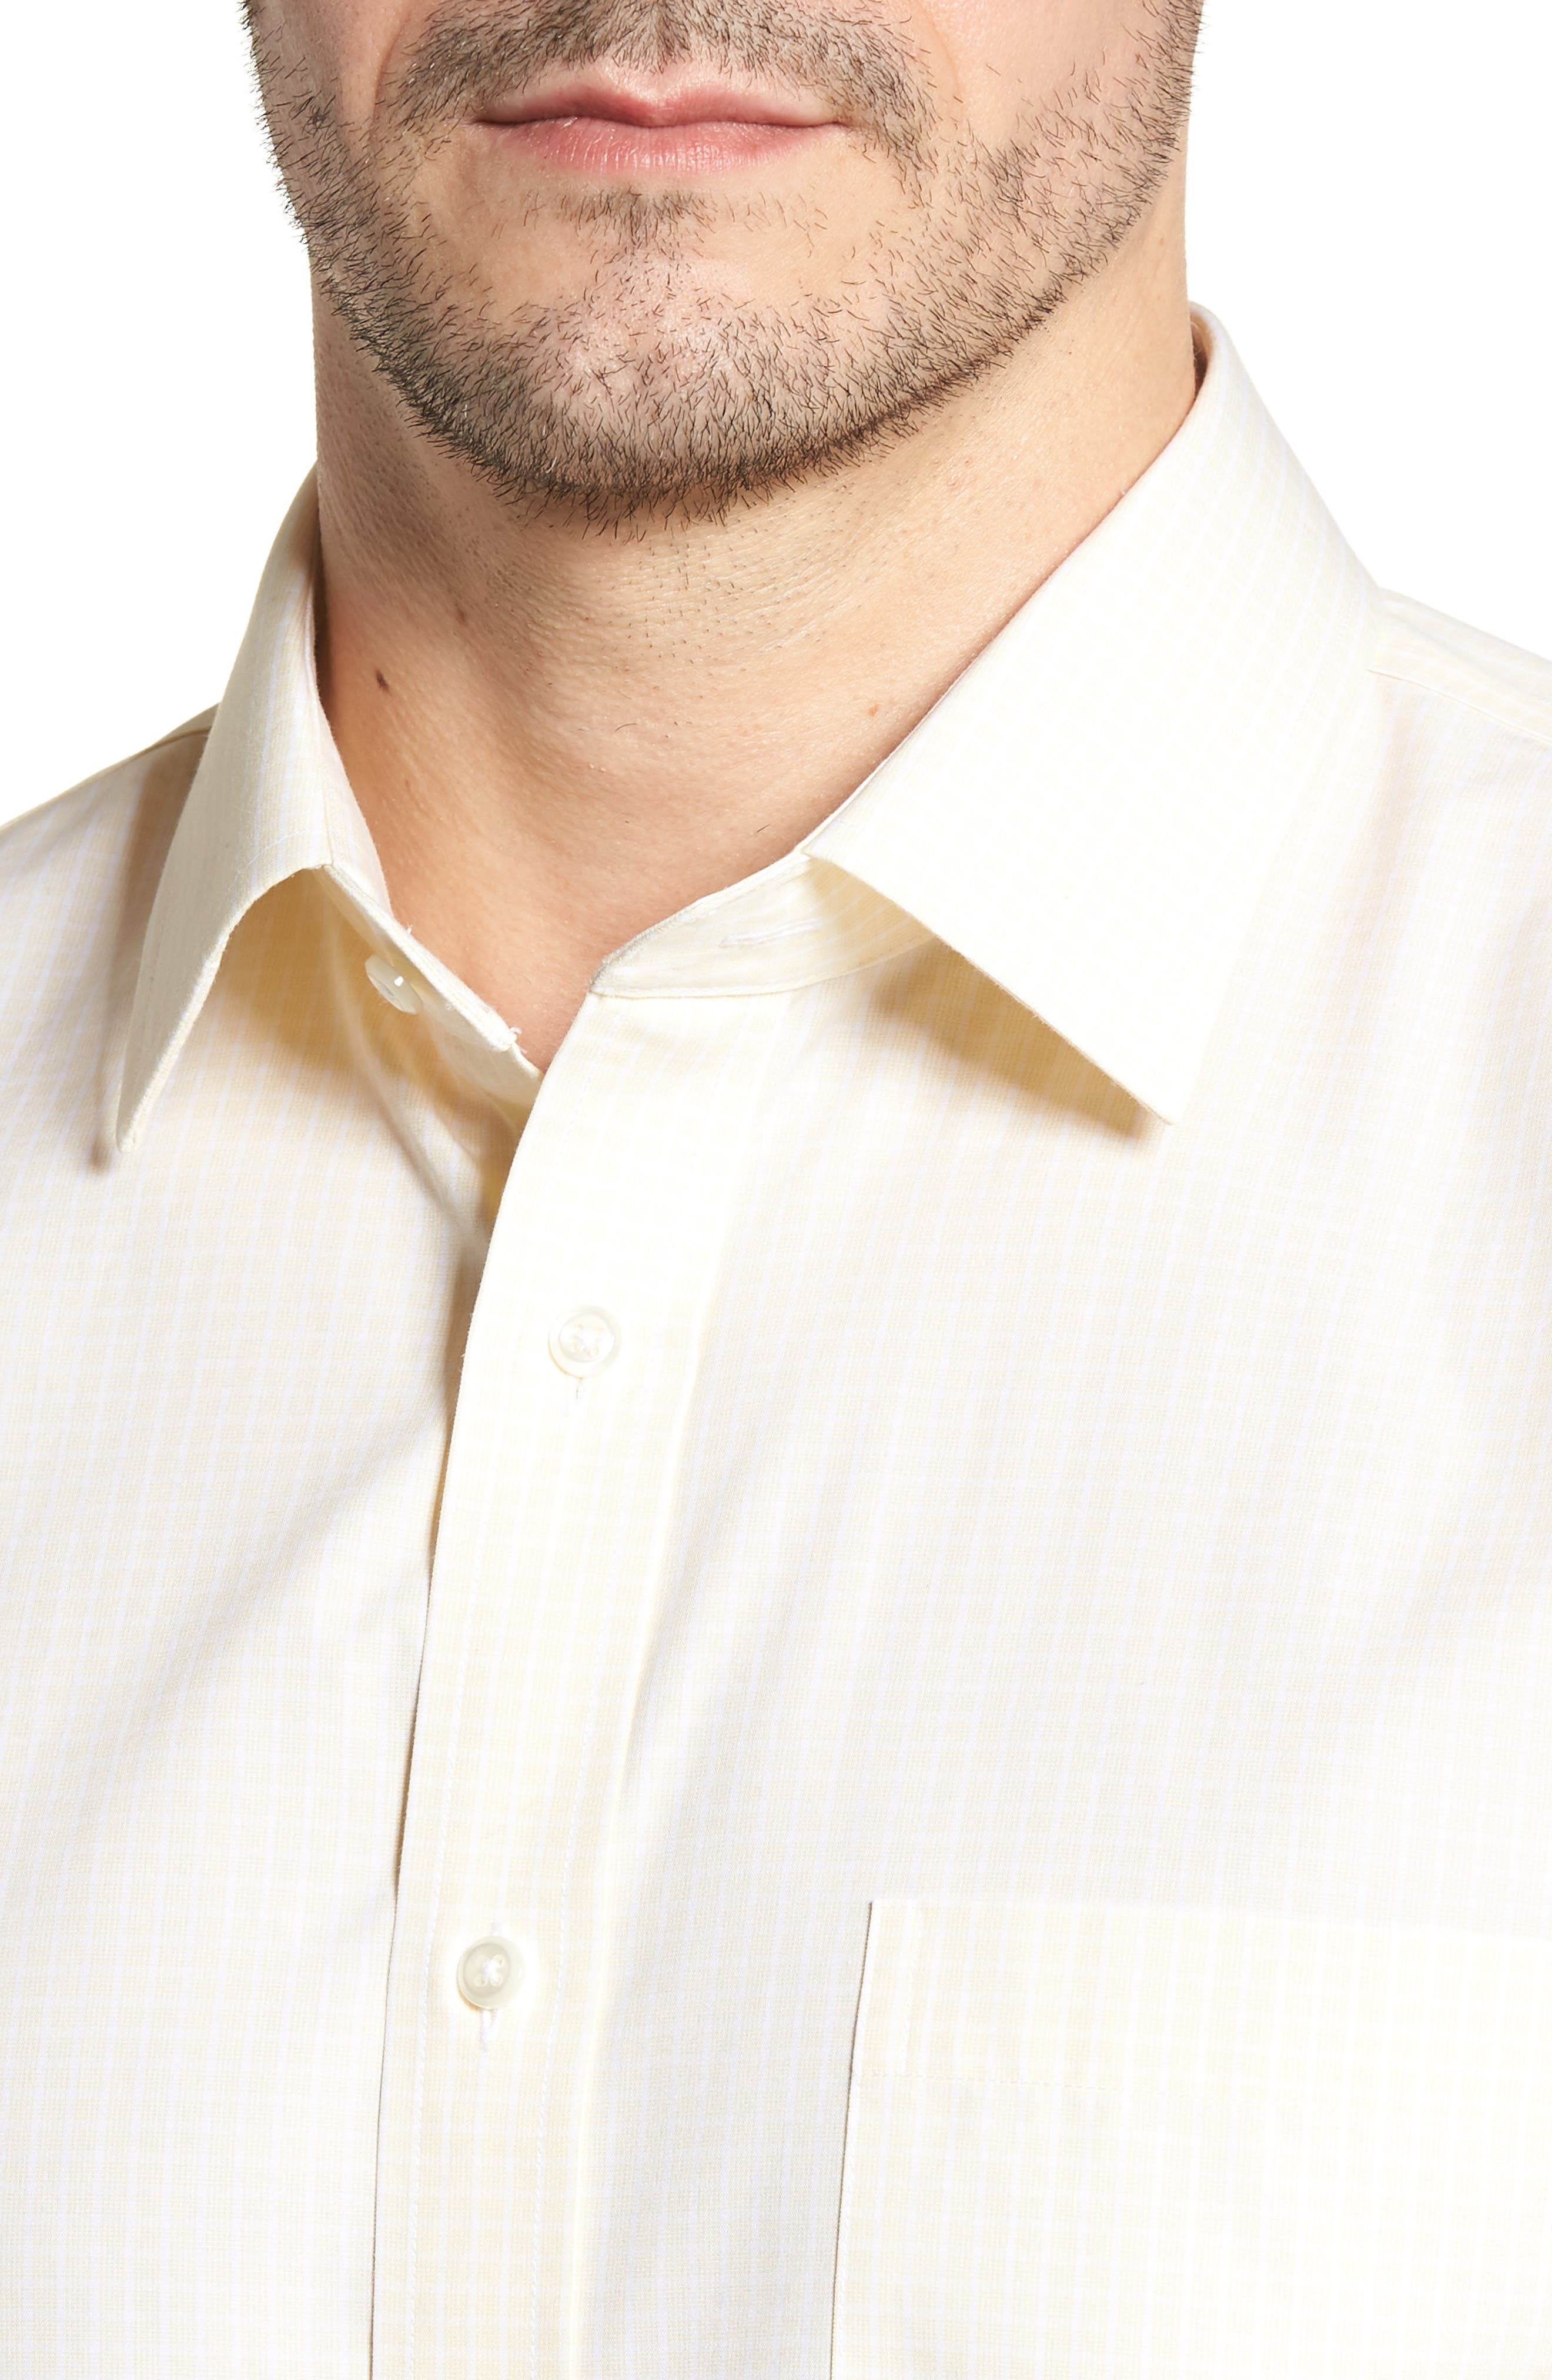 Smartcare Traditional Fit Dress Shirt,                             Alternate thumbnail 2, color,                             Yellow Clover